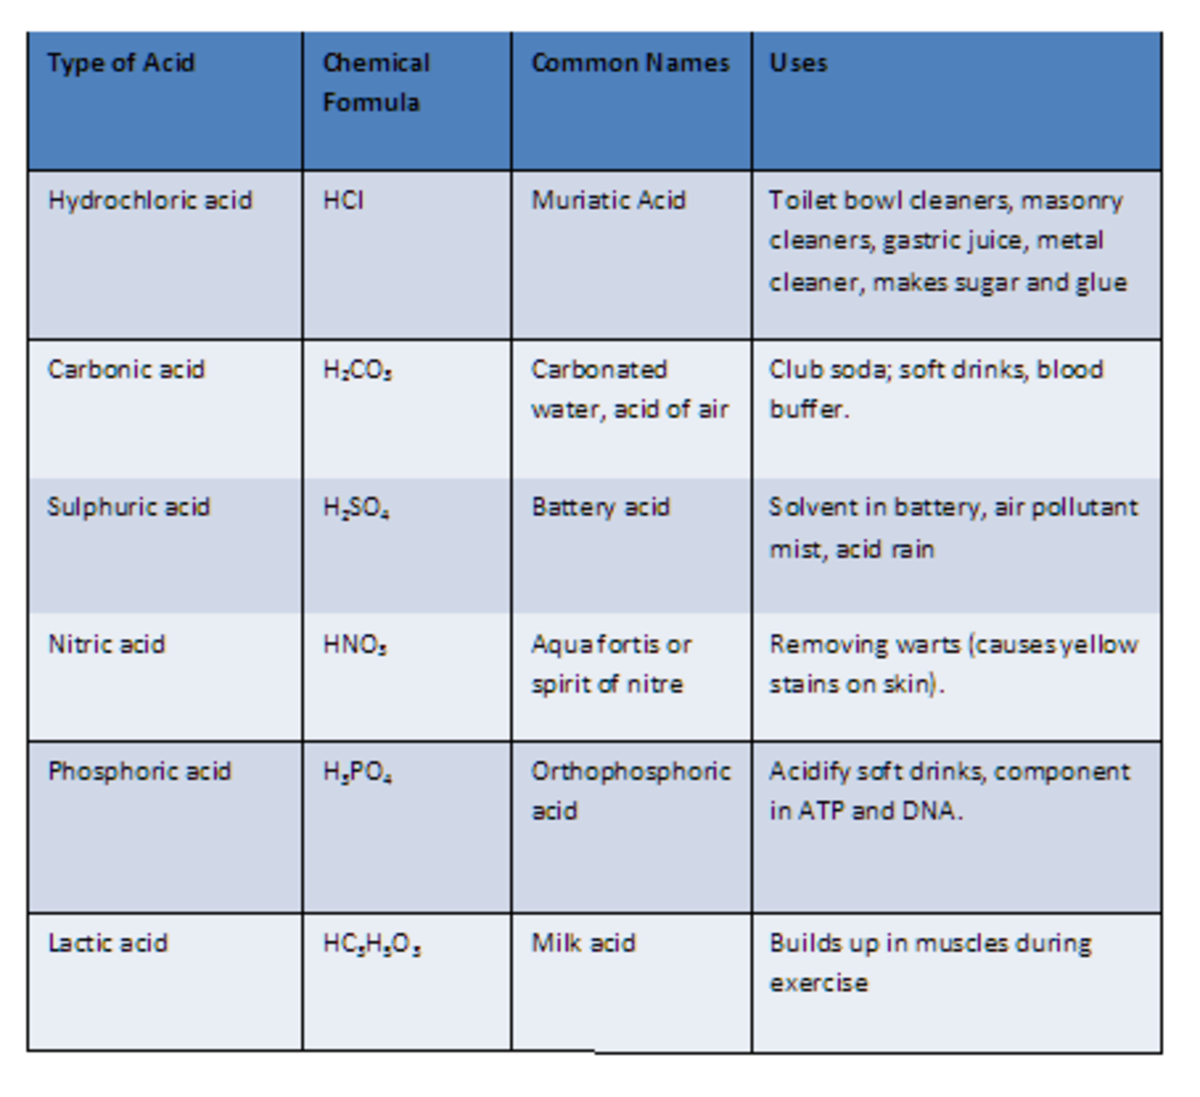 Common Acids with their Formulas and Uses